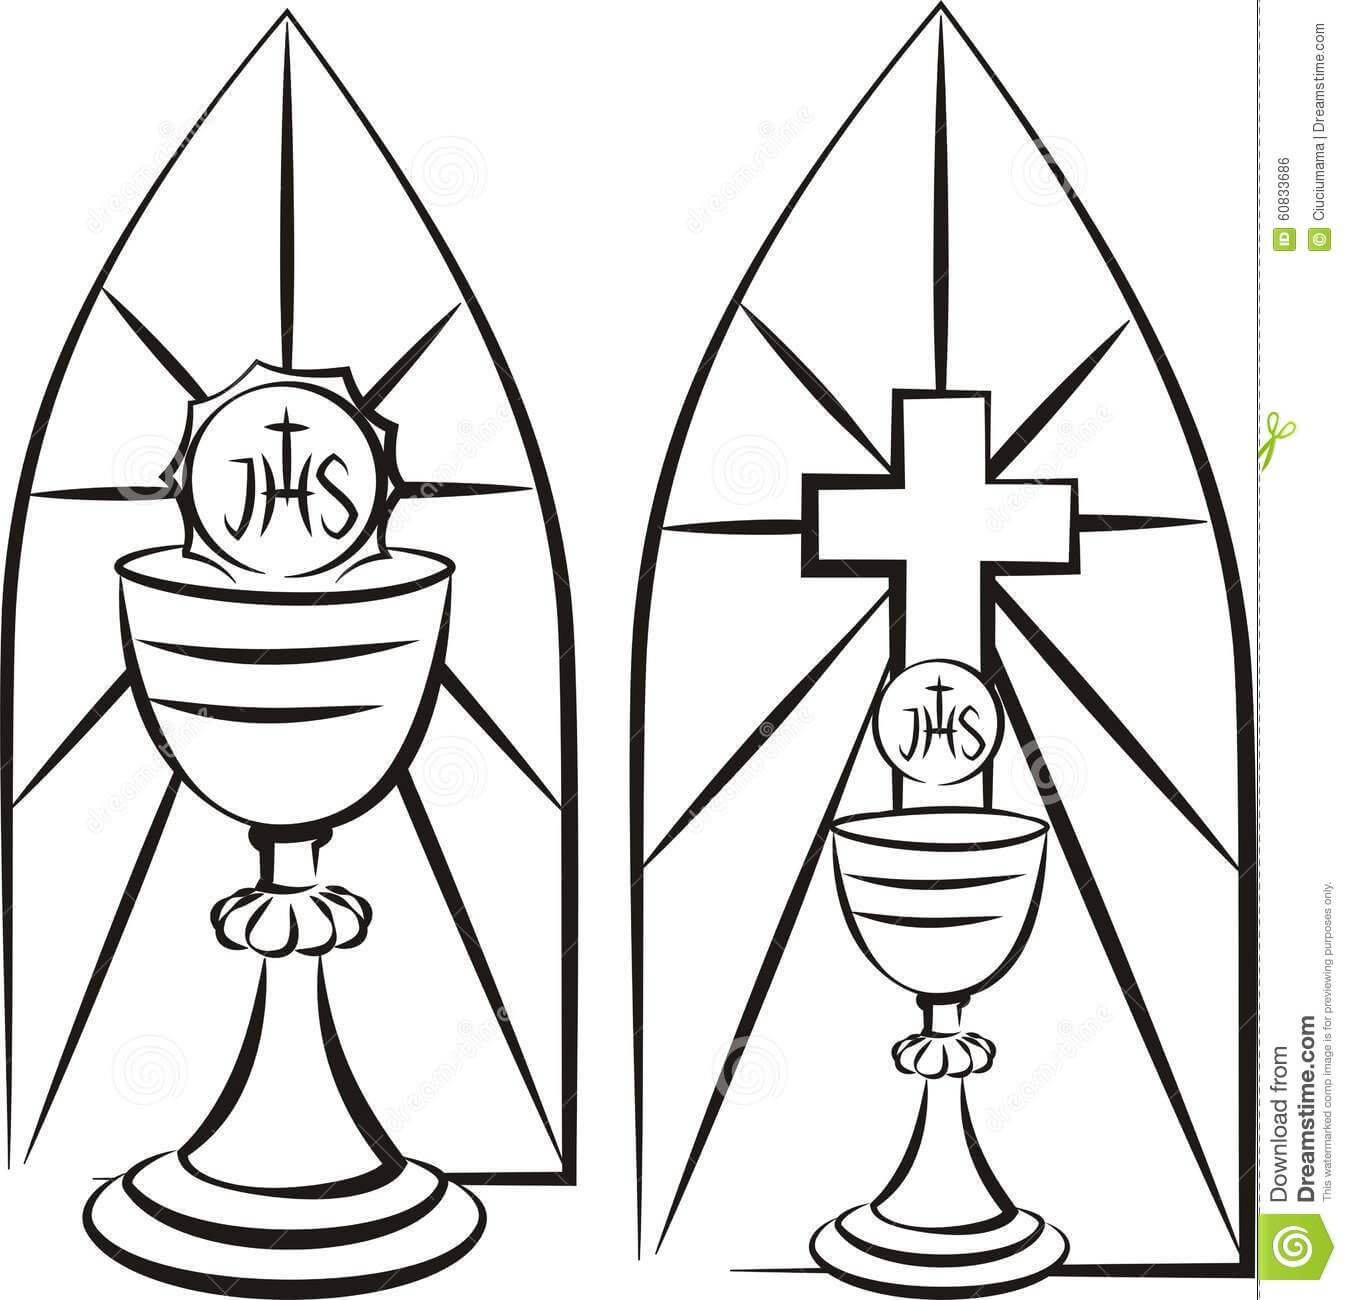 Image Result For Stain Glass First Communion Banner Template With Regard To Free Printable First Communion Banner Templates